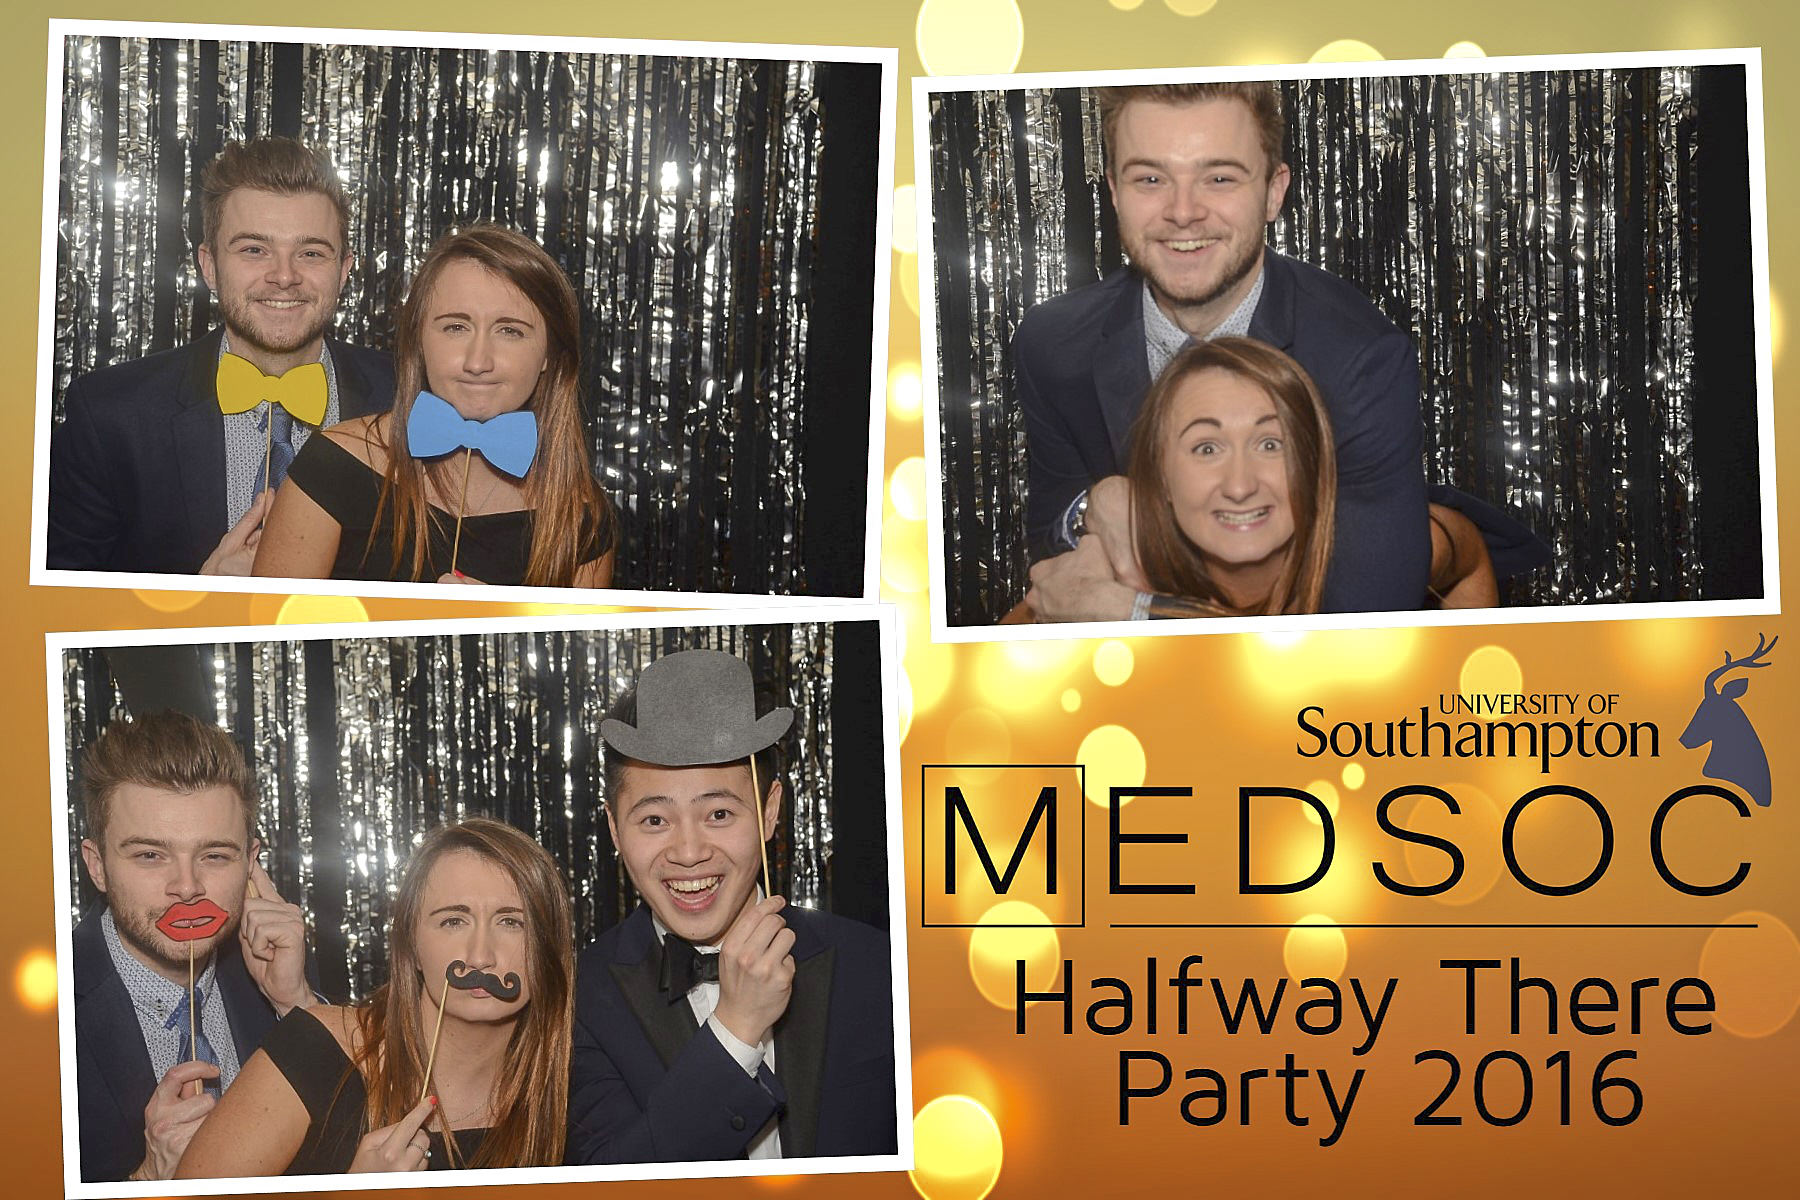 MedSoc Halfway There Party 2016 DS012413.jpg